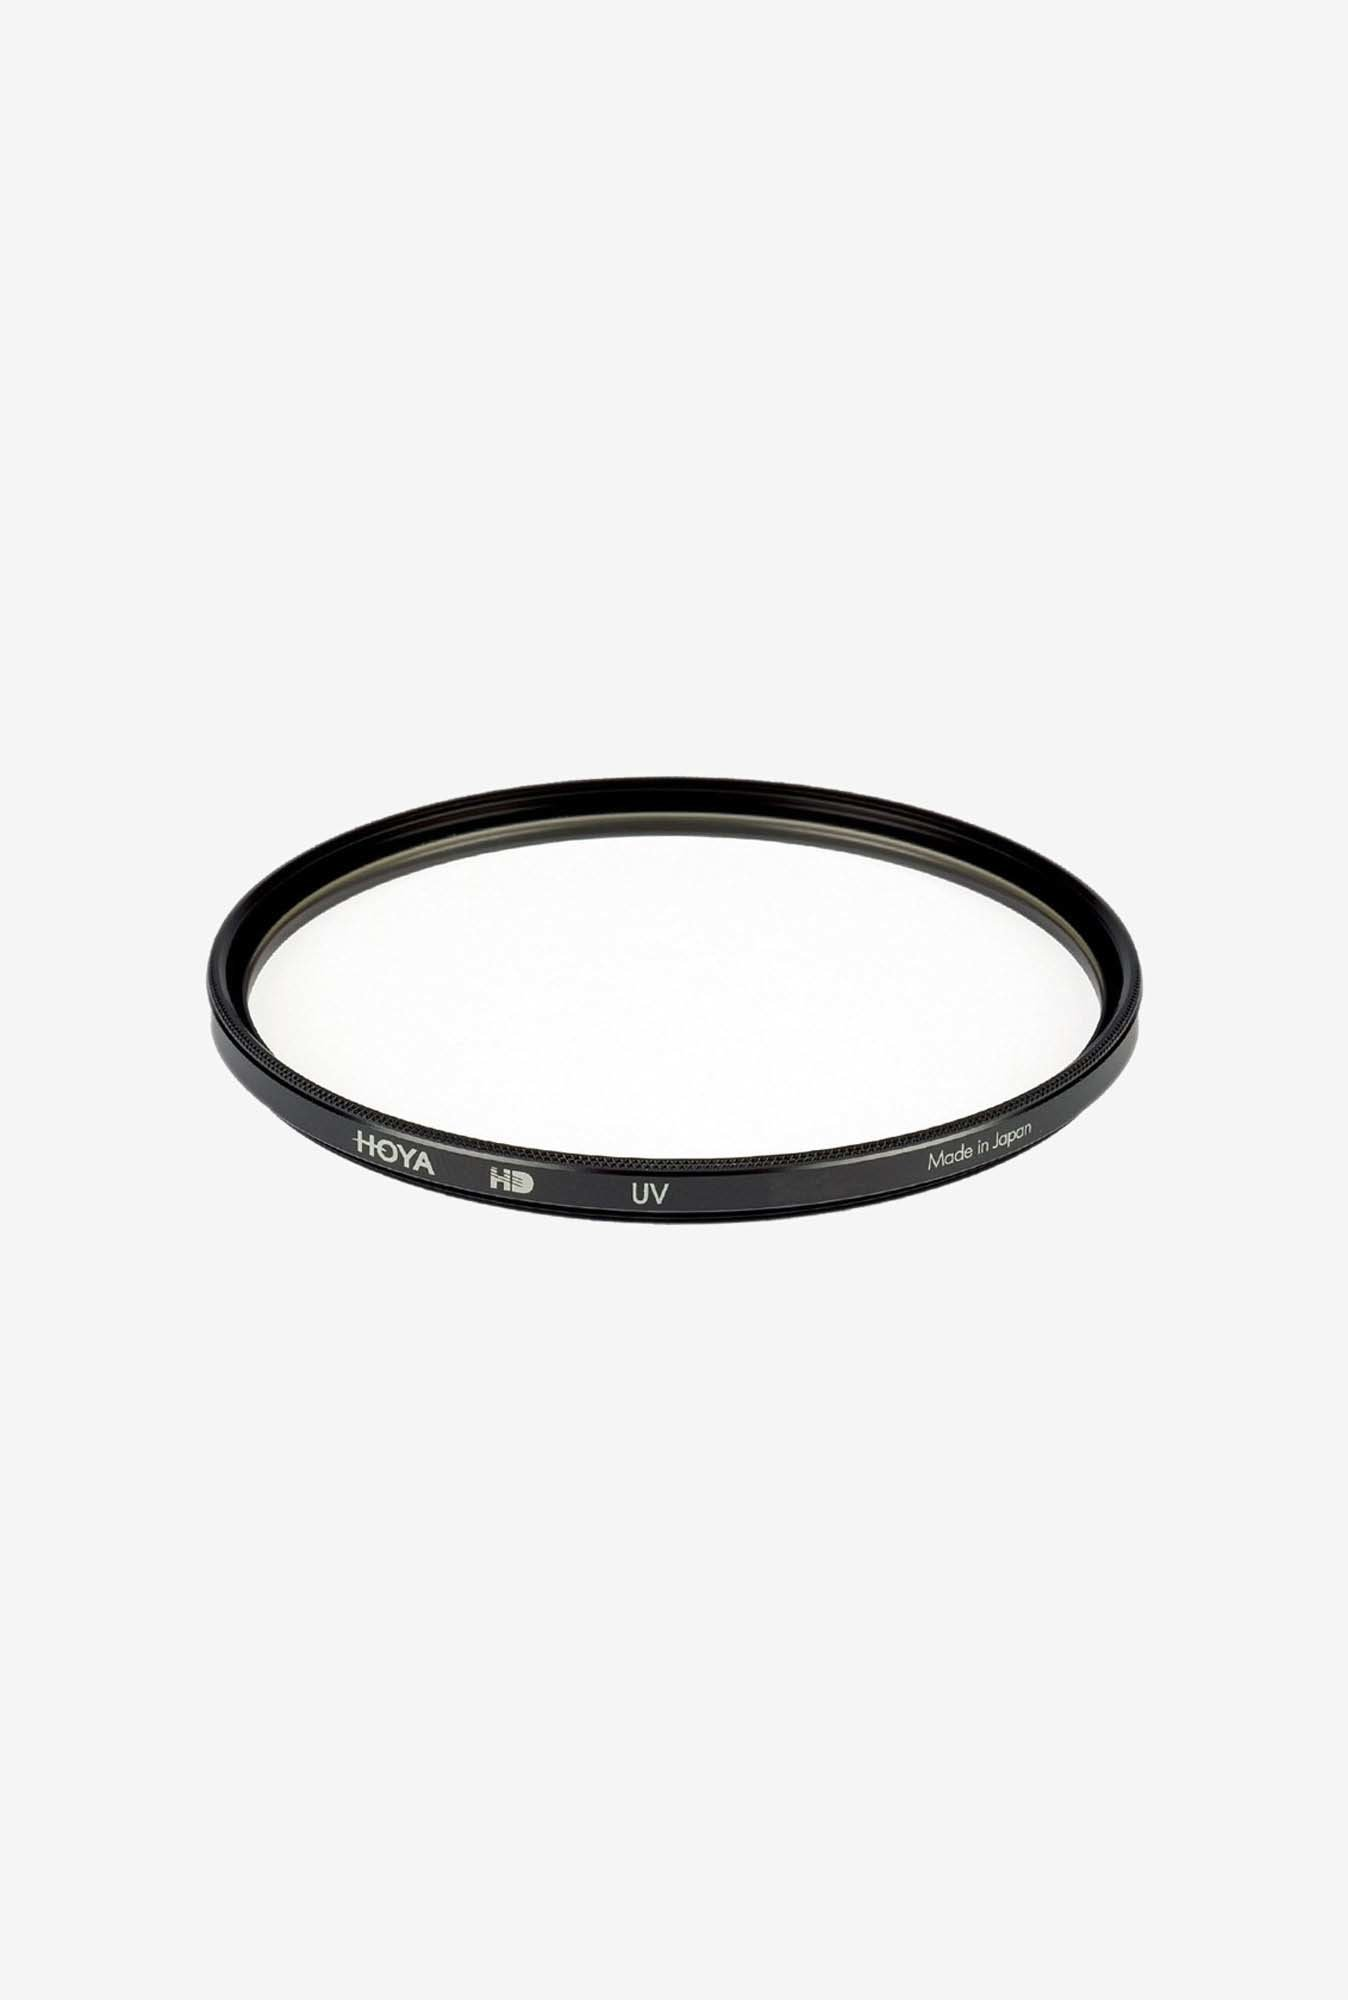 Hoya YHDUV040 Hd Glass Multi-Coated Uv Filter (Black)